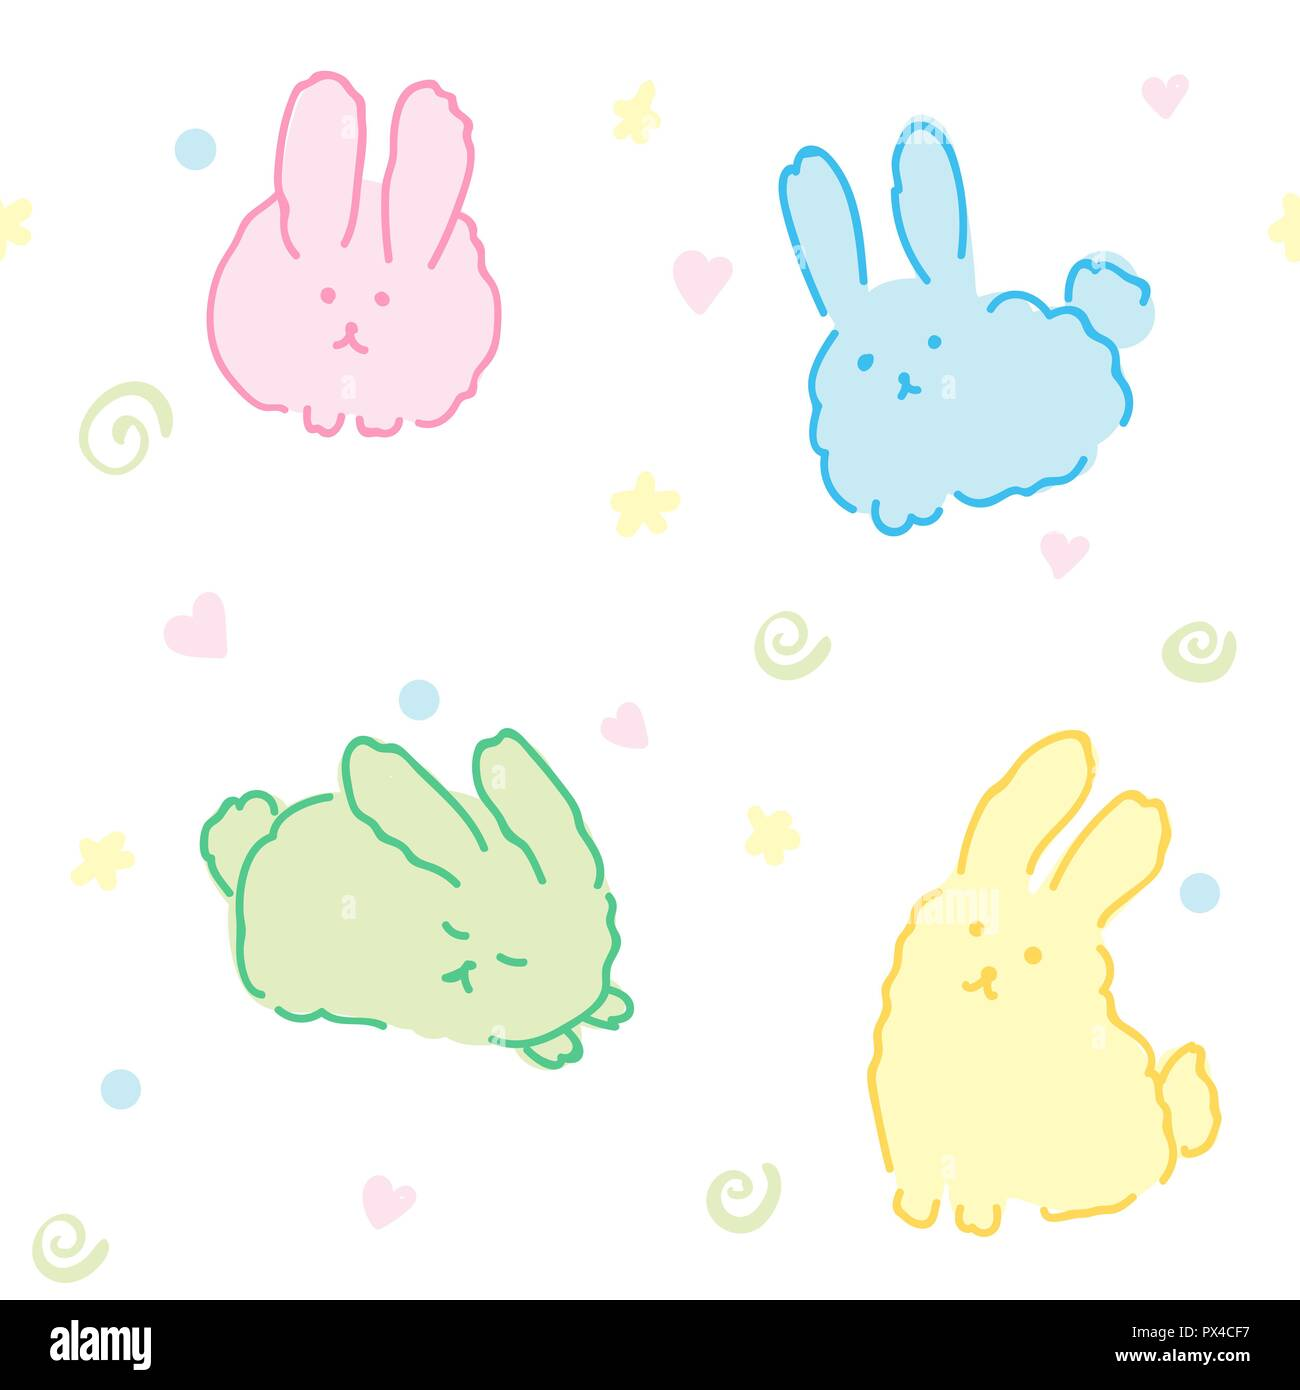 Image of: Android Fluffy Bunnies Wallpaper Seamless Pattern Cute Rabbits Kawaii Animals In White Alamy Fluffy Bunnies Wallpaper Seamless Pattern Cute Rabbits Kawaii